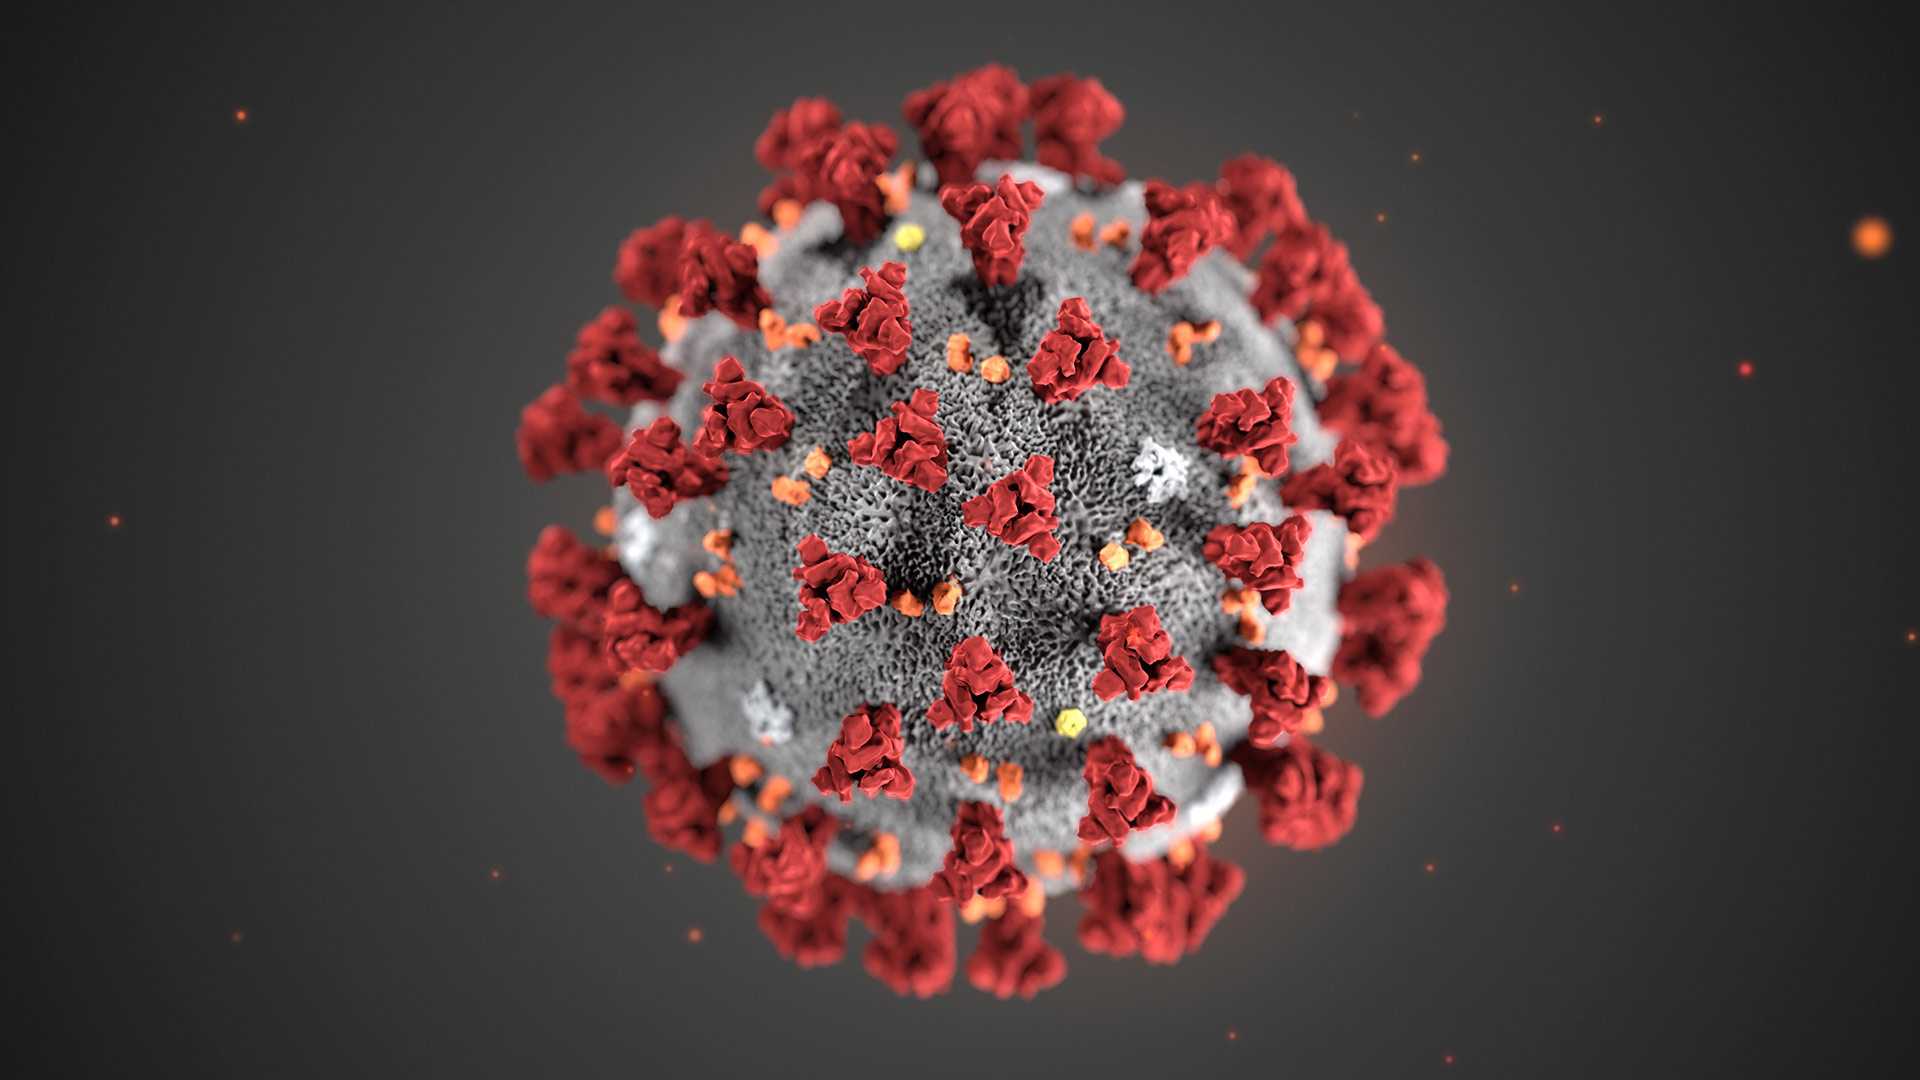 This illustration provided by the Centers for Disease Control and Prevention (CDC) in January 2020 shows the 2019 Novel Coronavirus (2019-nCoV).